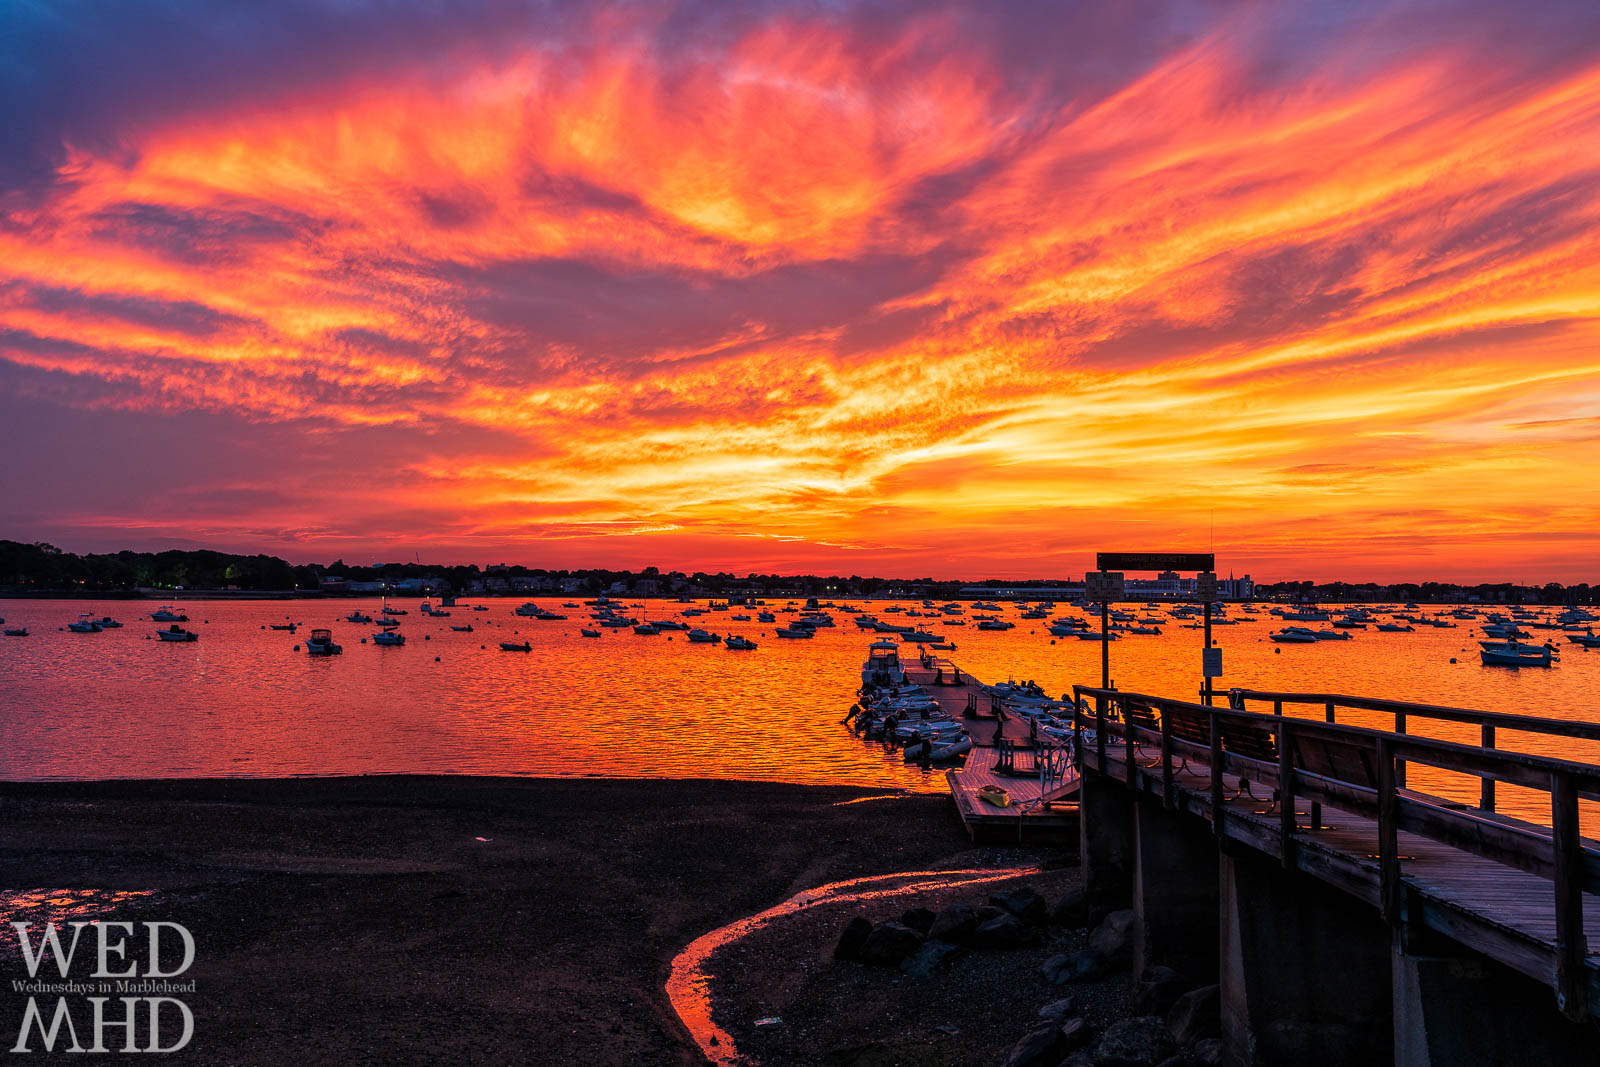 Hot and humid air from the coming heat wave erupts as a fire in the sky over Salem harbor and the Village Street pier at sunset